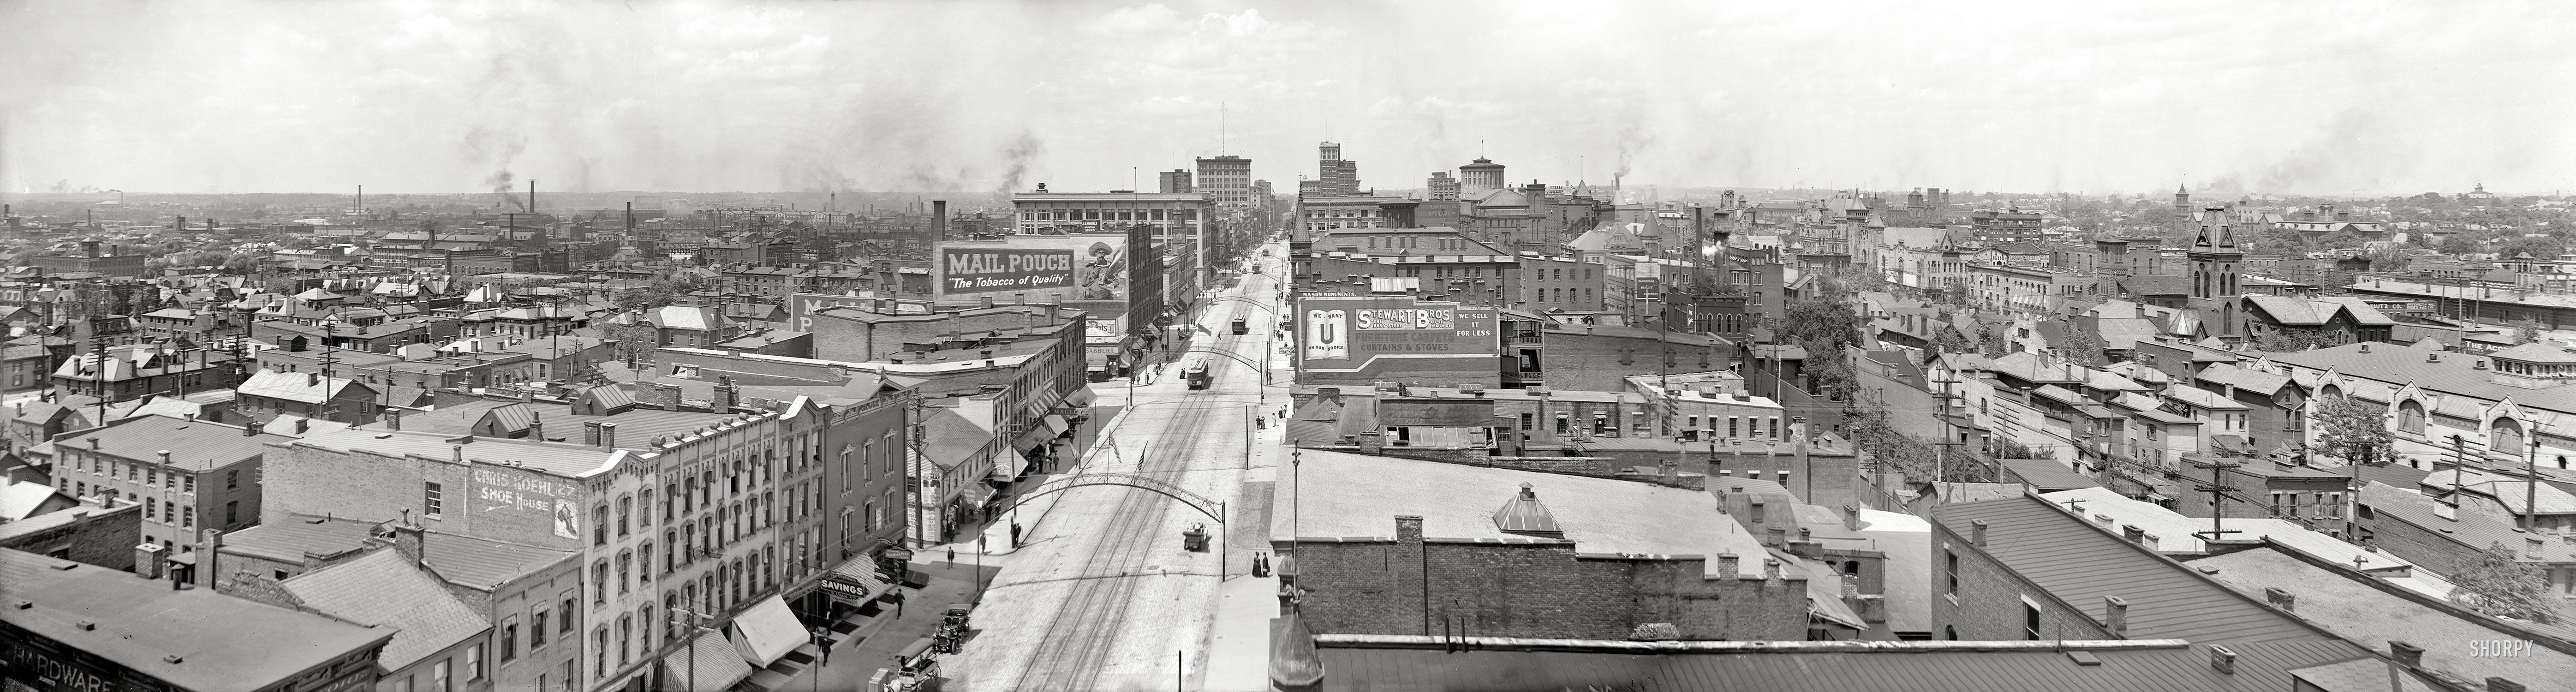 Columbus Ohio Circa 1909 Aerial View From Courthouse Shorpy